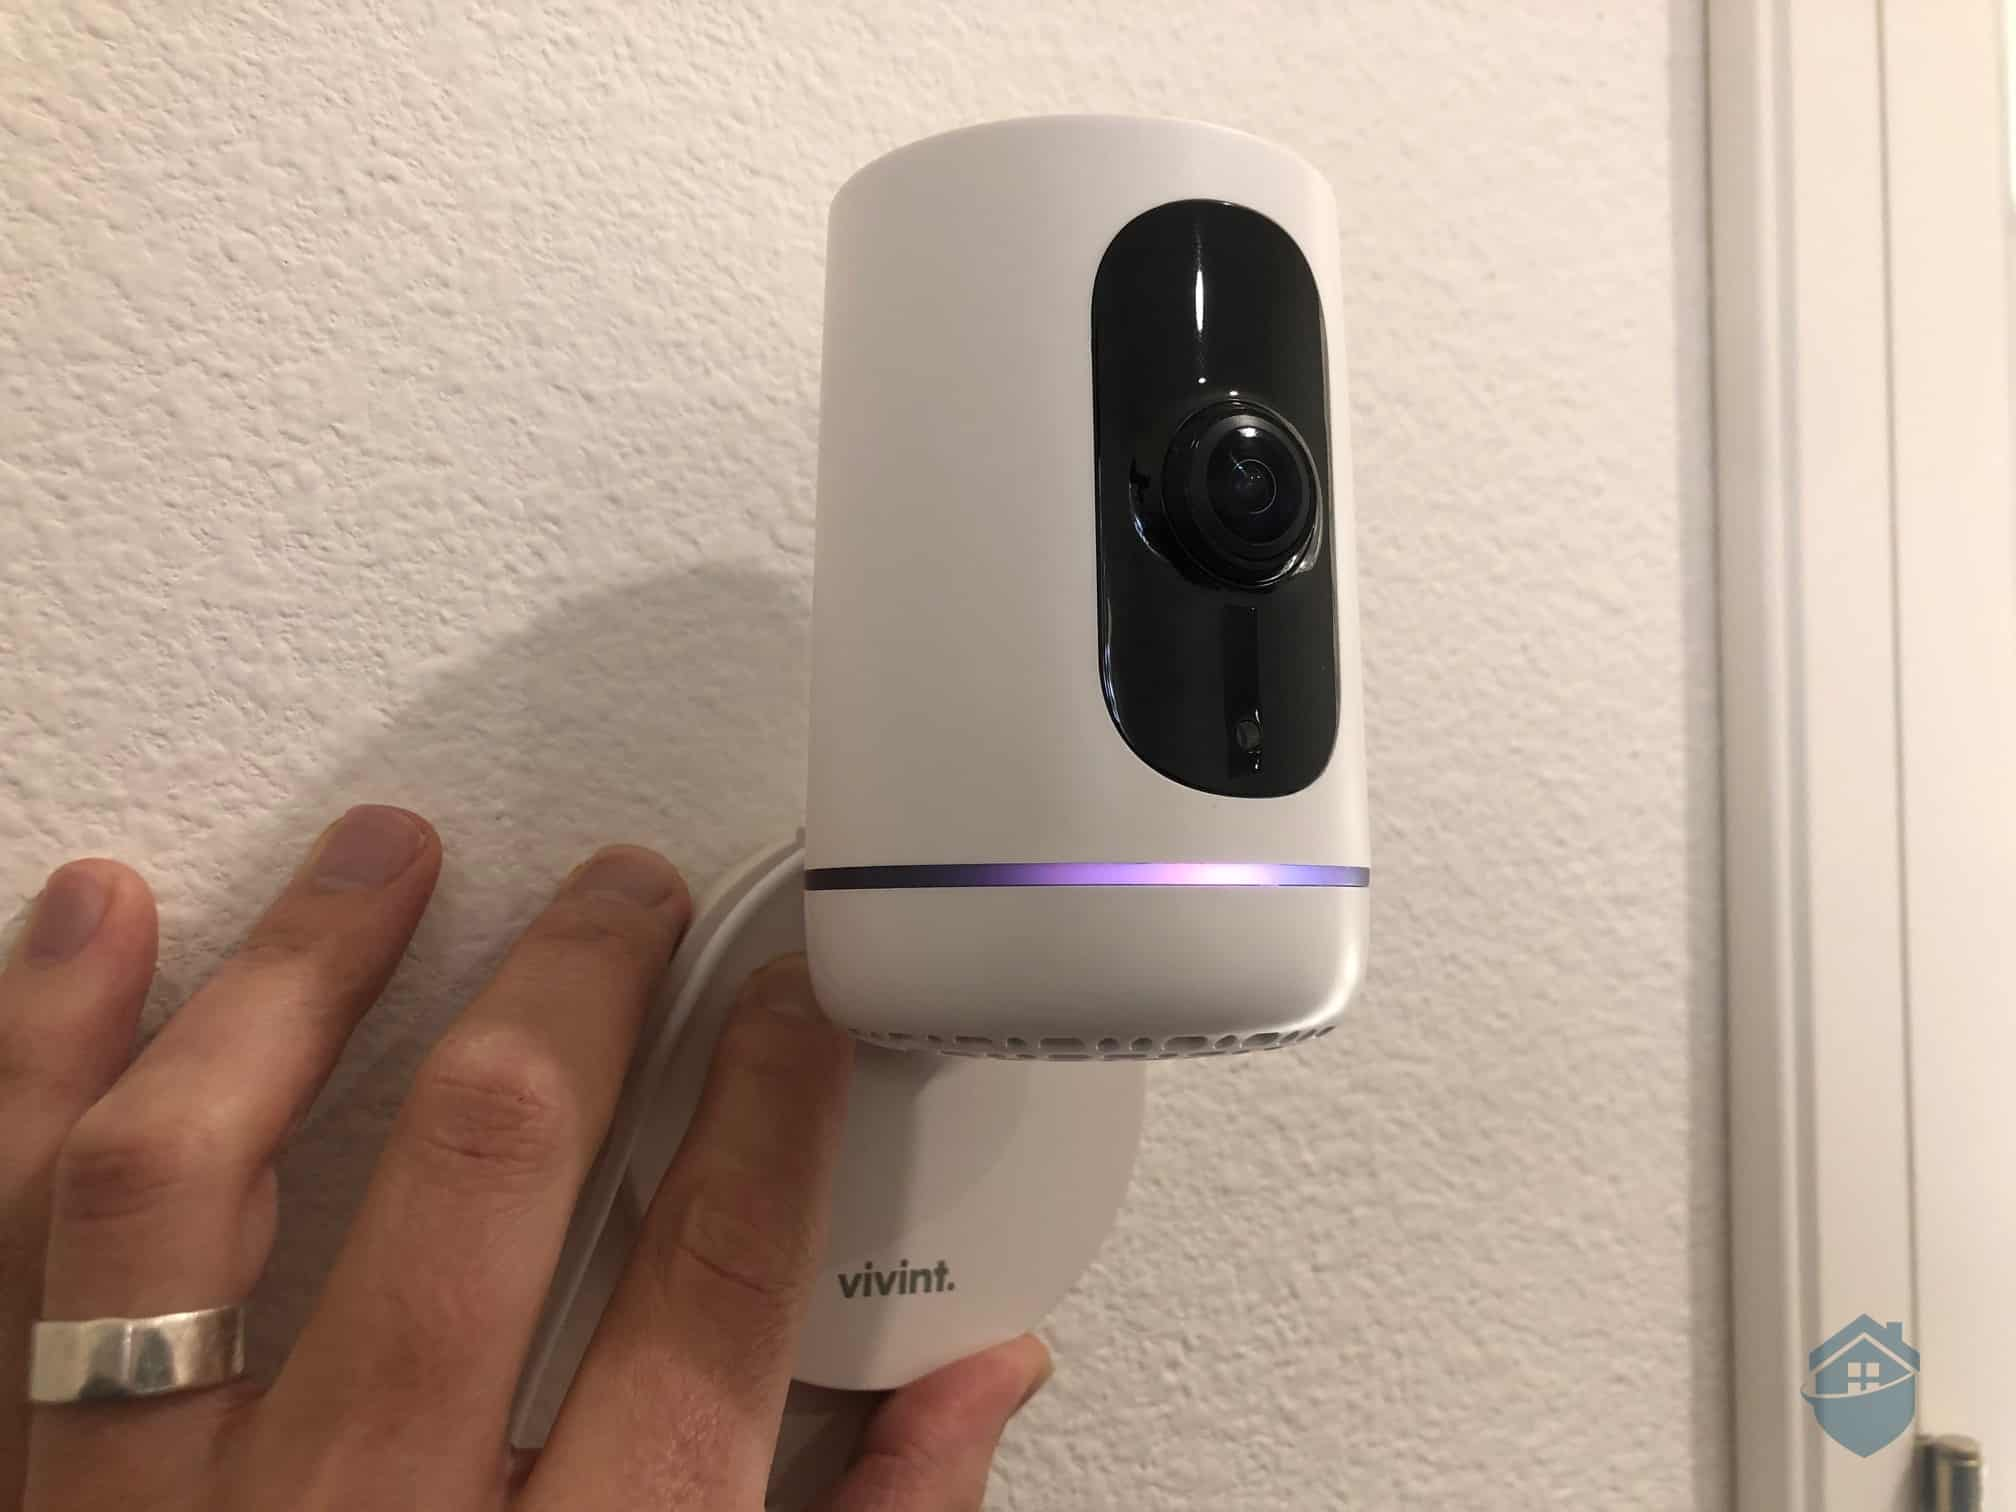 Vivint Ping Camera Mounted on the wall